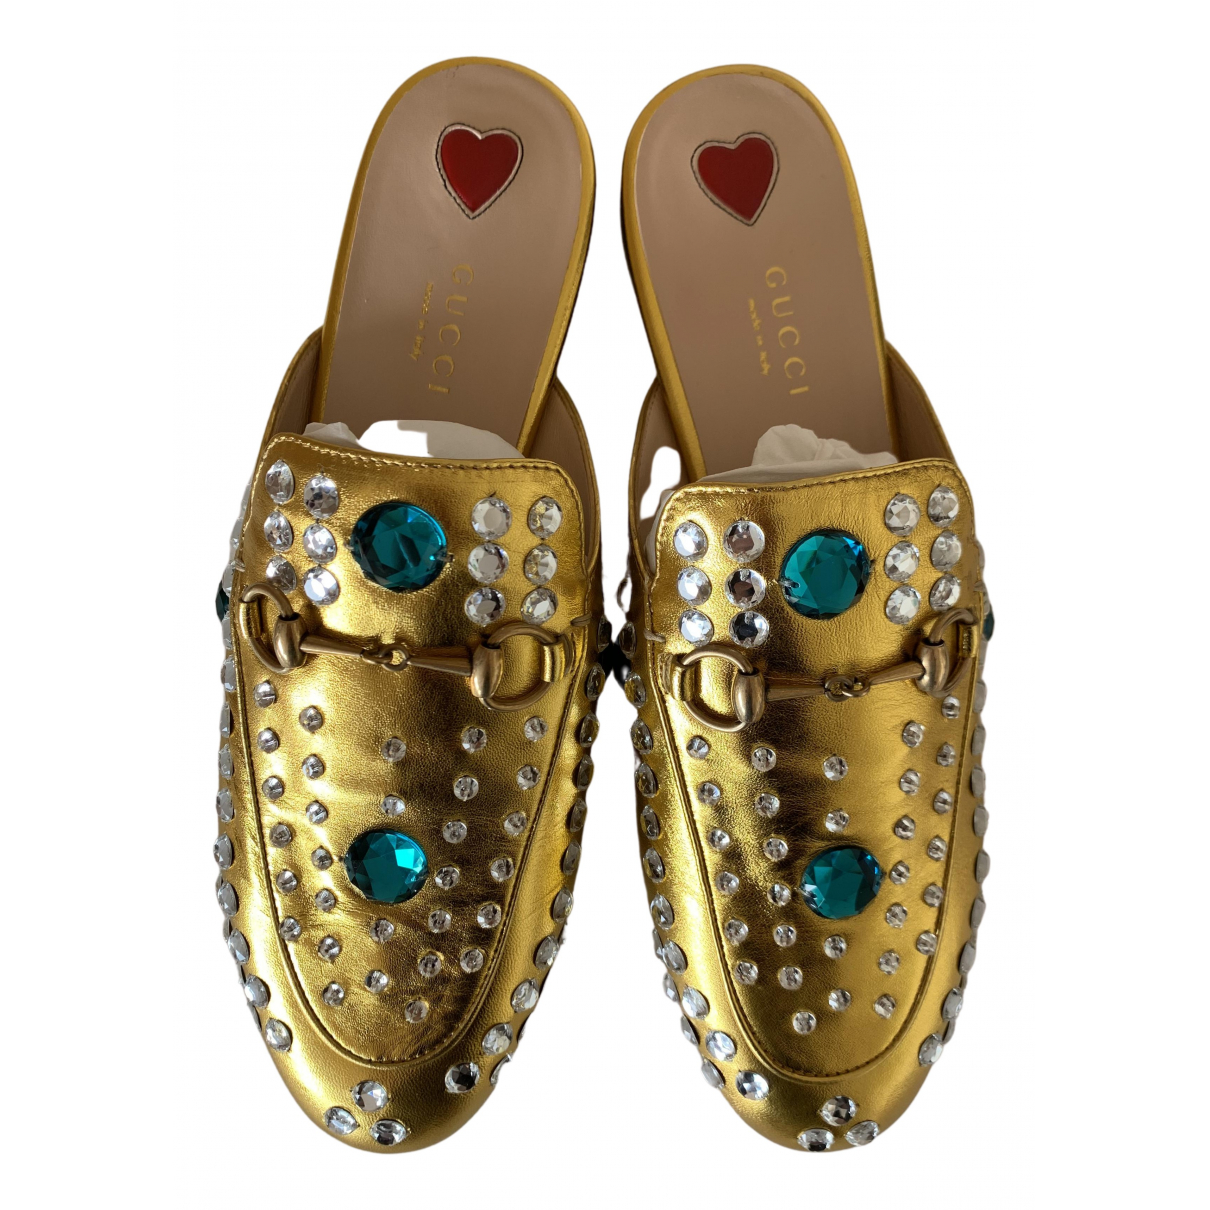 Gucci Princetown Gold Leather Flats for Women 37.5 EU